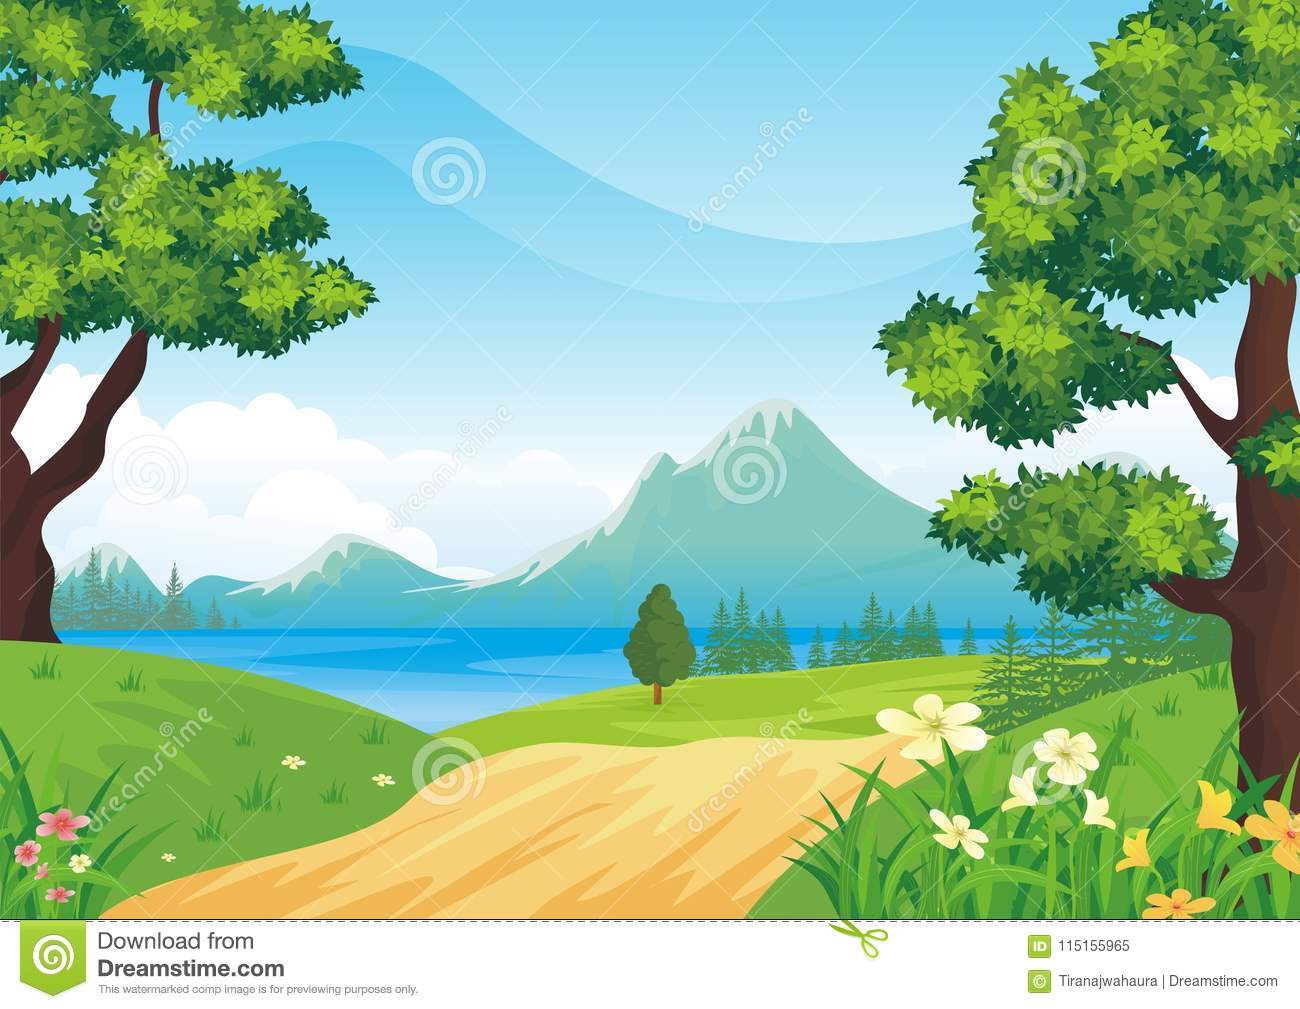 Lovely Spring landscape background with cartoon style